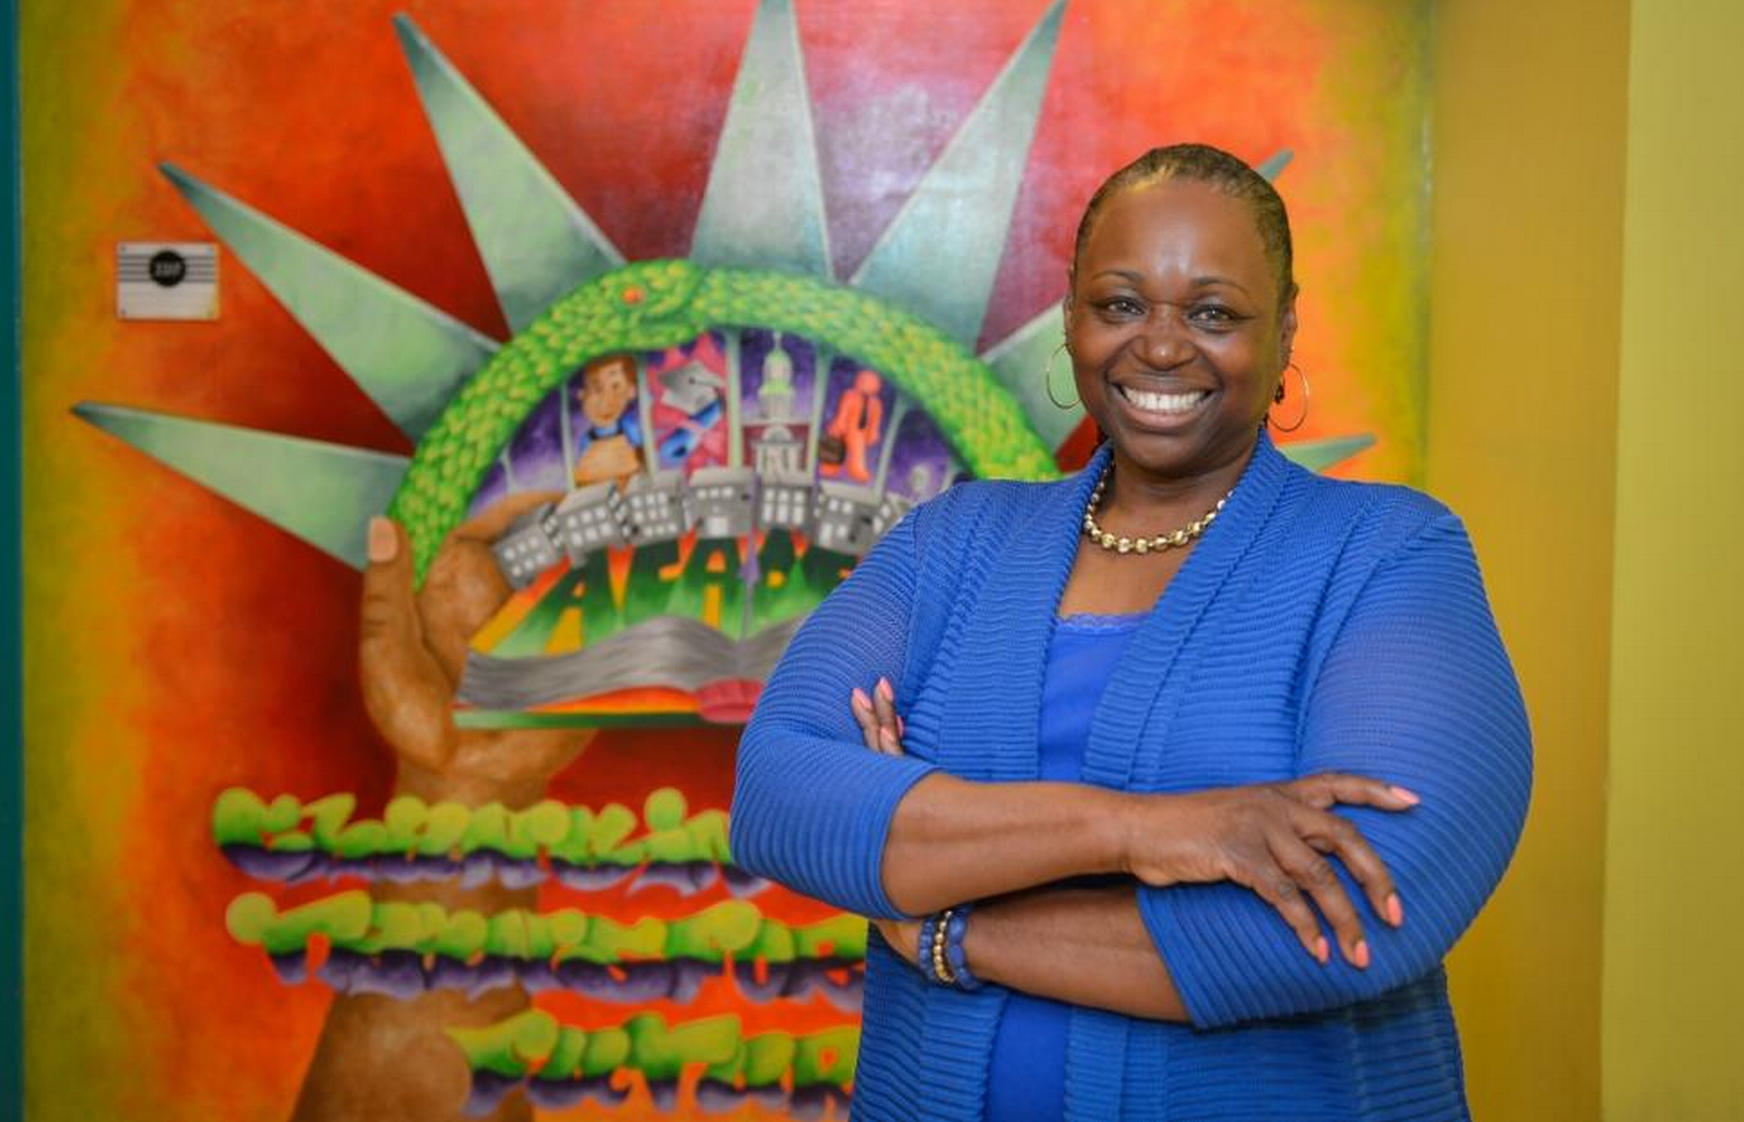 (News Article) Compassionate counselor turns around the lives of at-risk Bronx students |NY Daily News